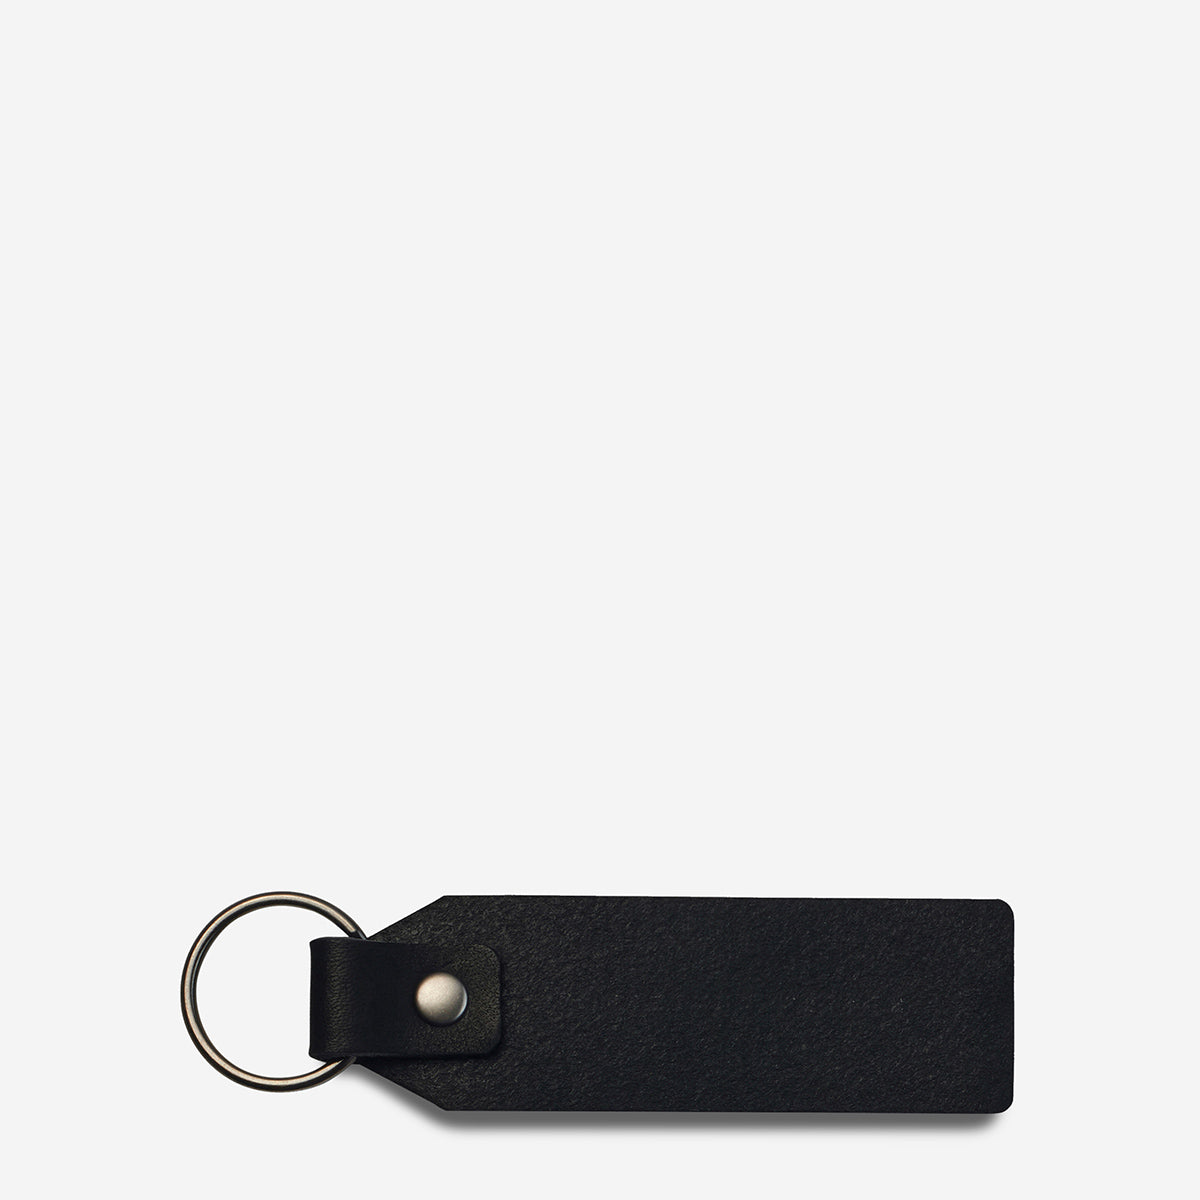 Status Anxiety If I Stay Leather Keyring Black